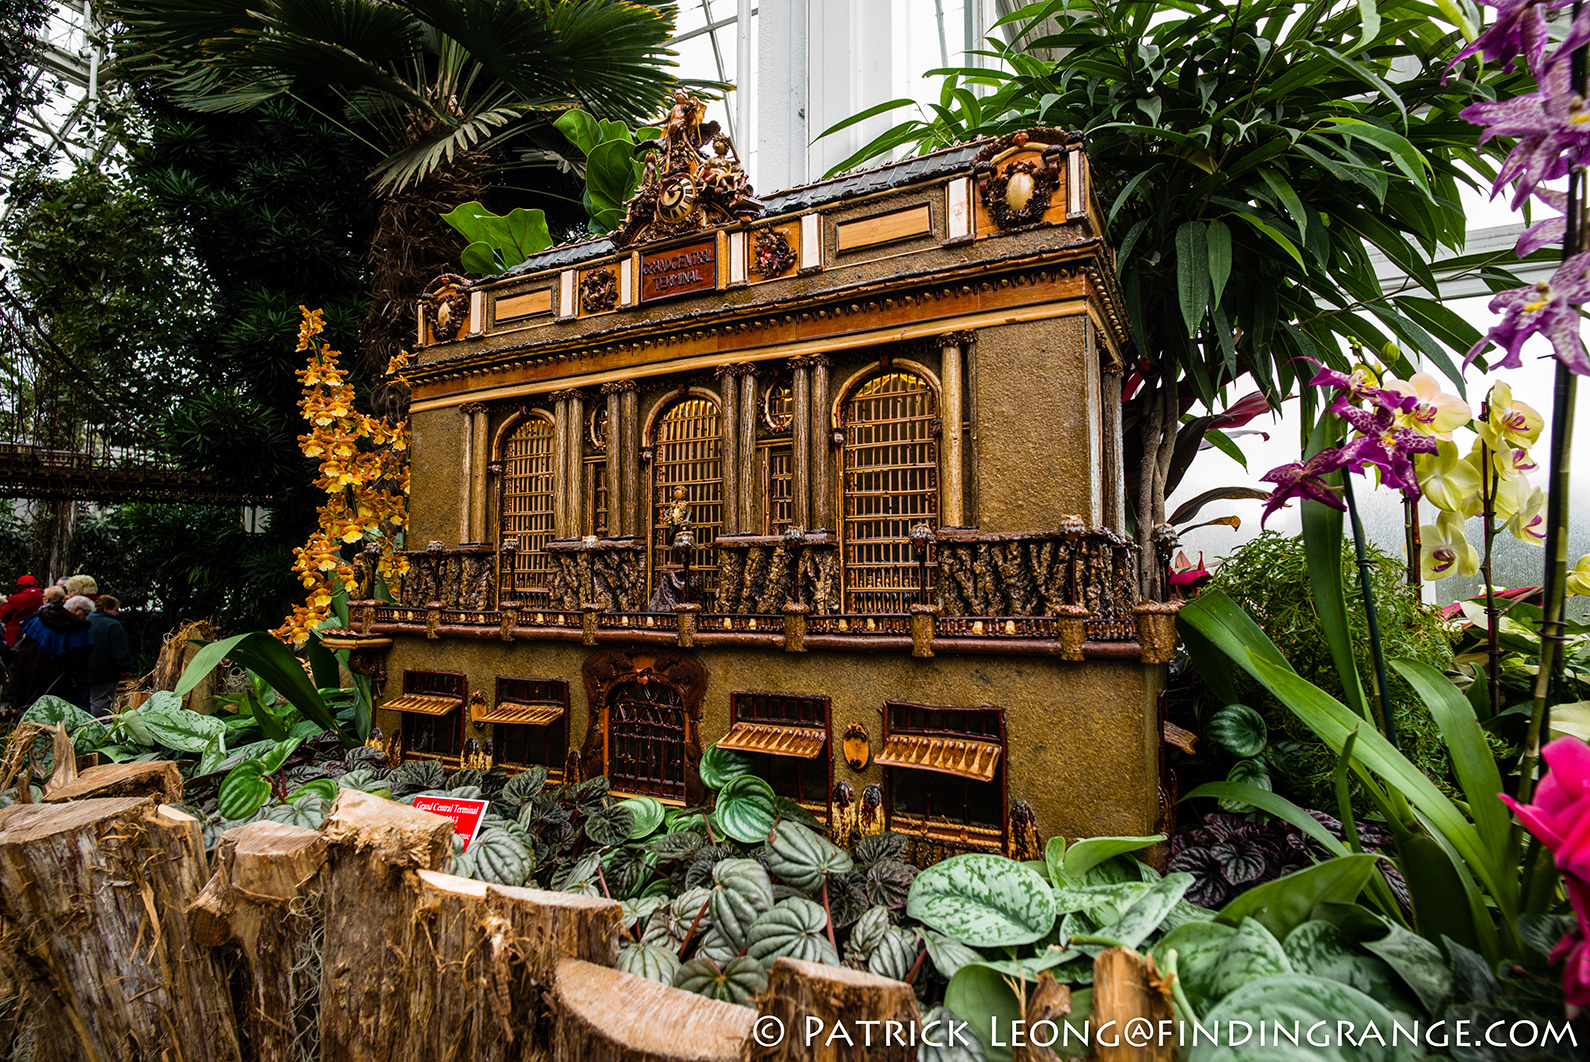 Holiday Train Show New York Botanical Garden Leica